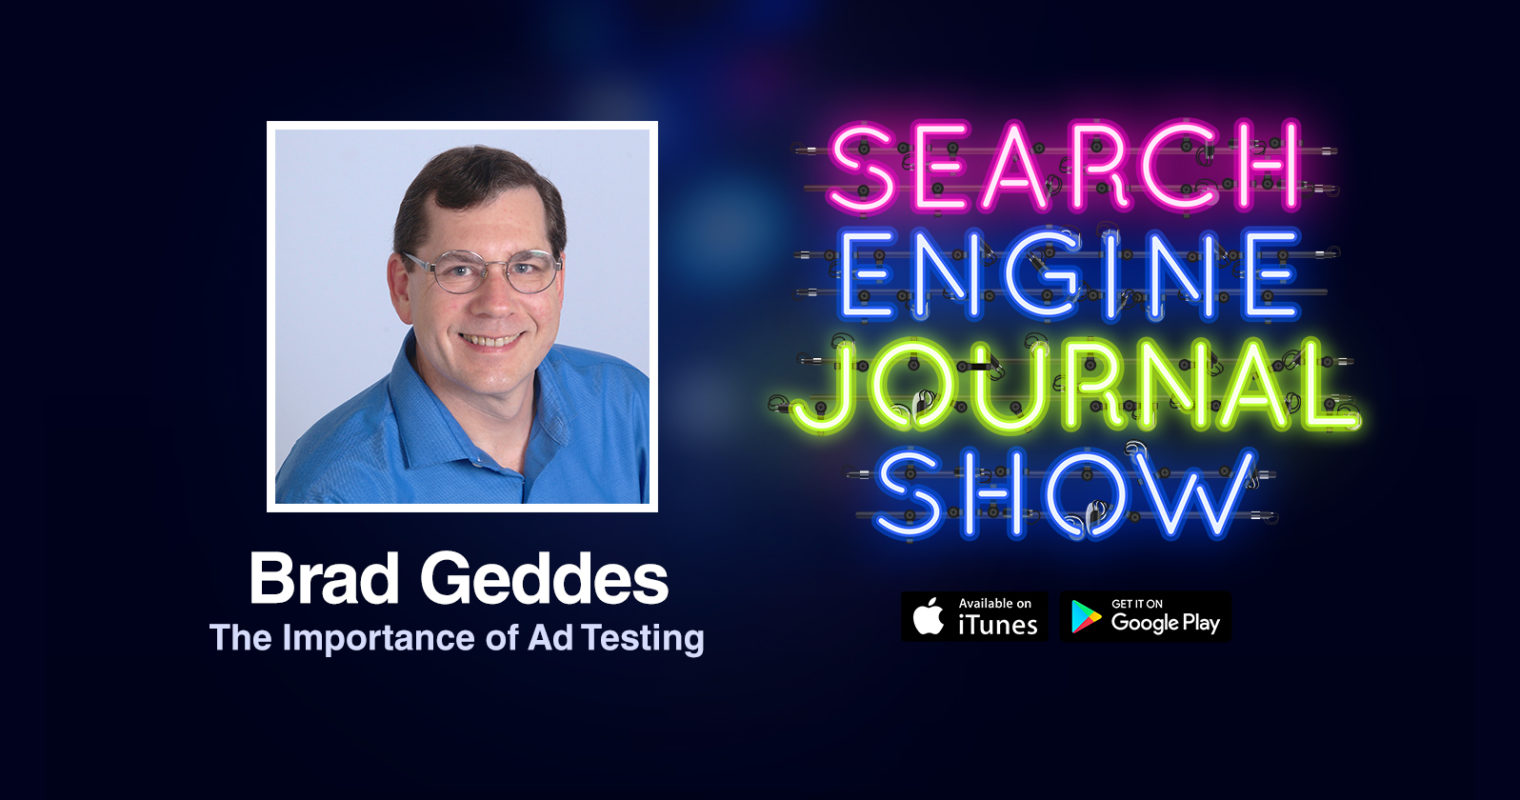 The Importance of Ad Testing with Brad Geddes [PODCAST]